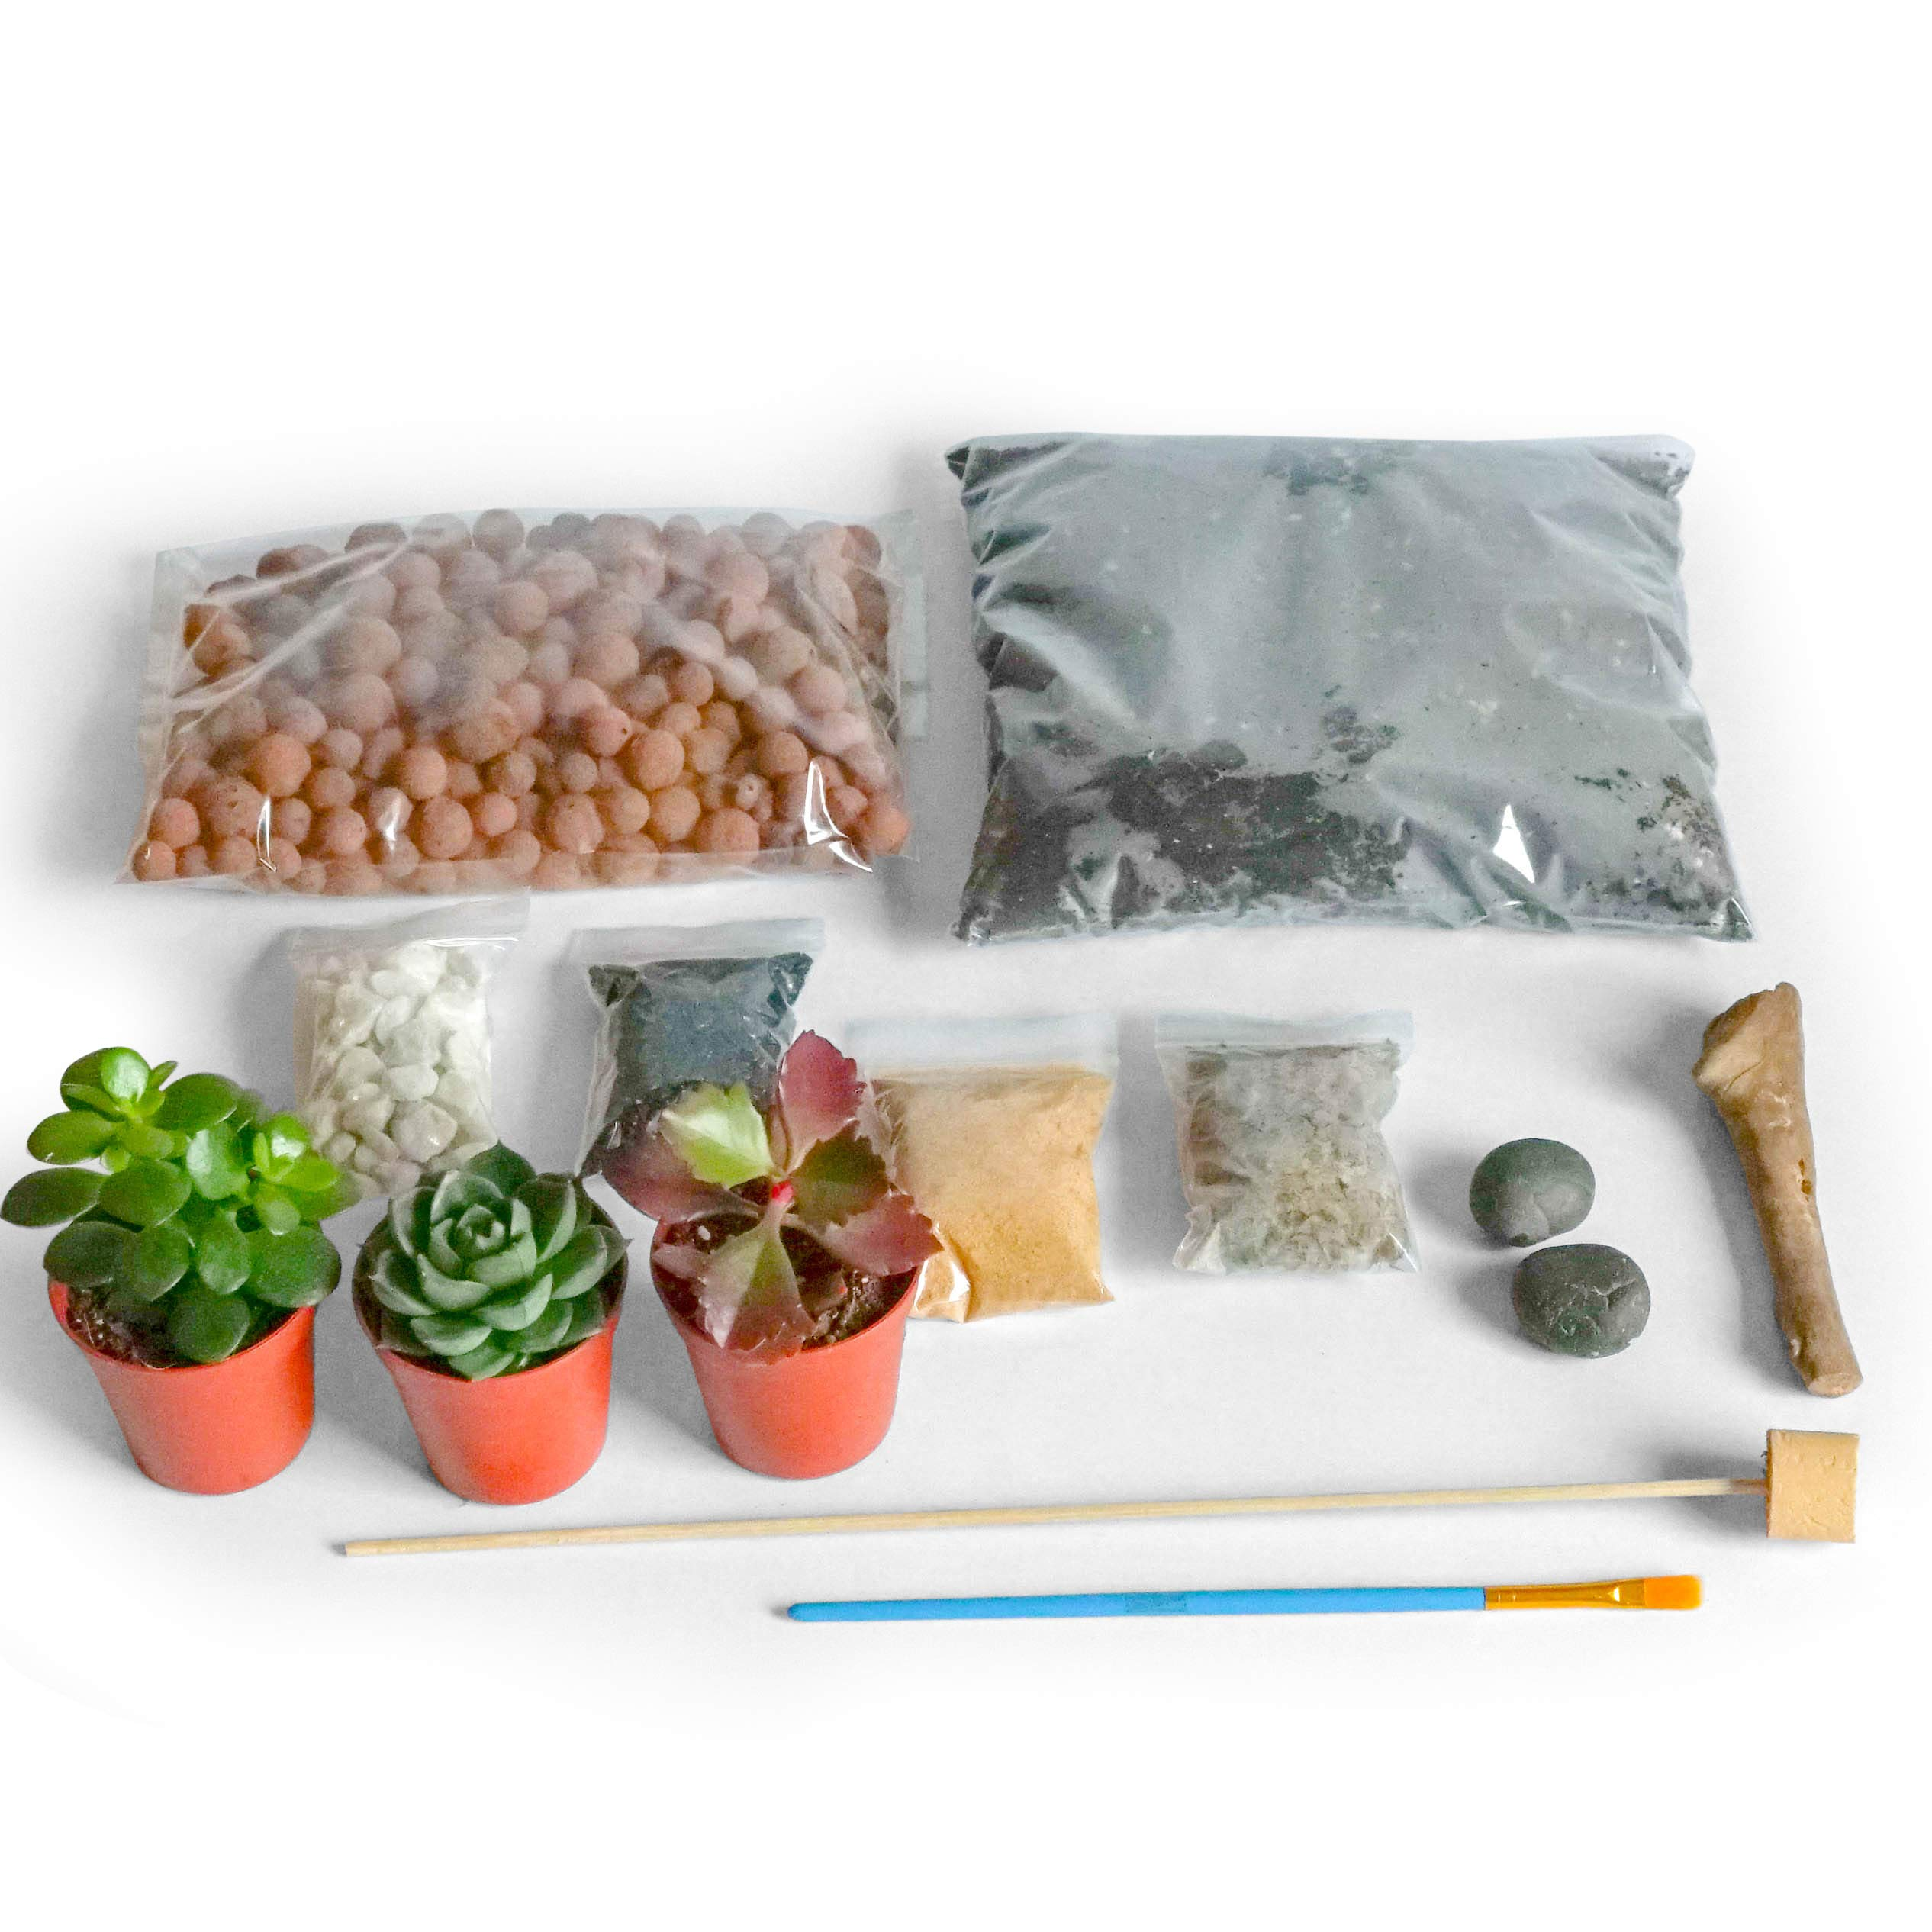 Concretelab Co Terrarium Diy Kit For Succulents And Cacti Plants With Step By Step Guide Includes Soil Charcoal Pebbles Sphagnum Moss Sand Driftwood